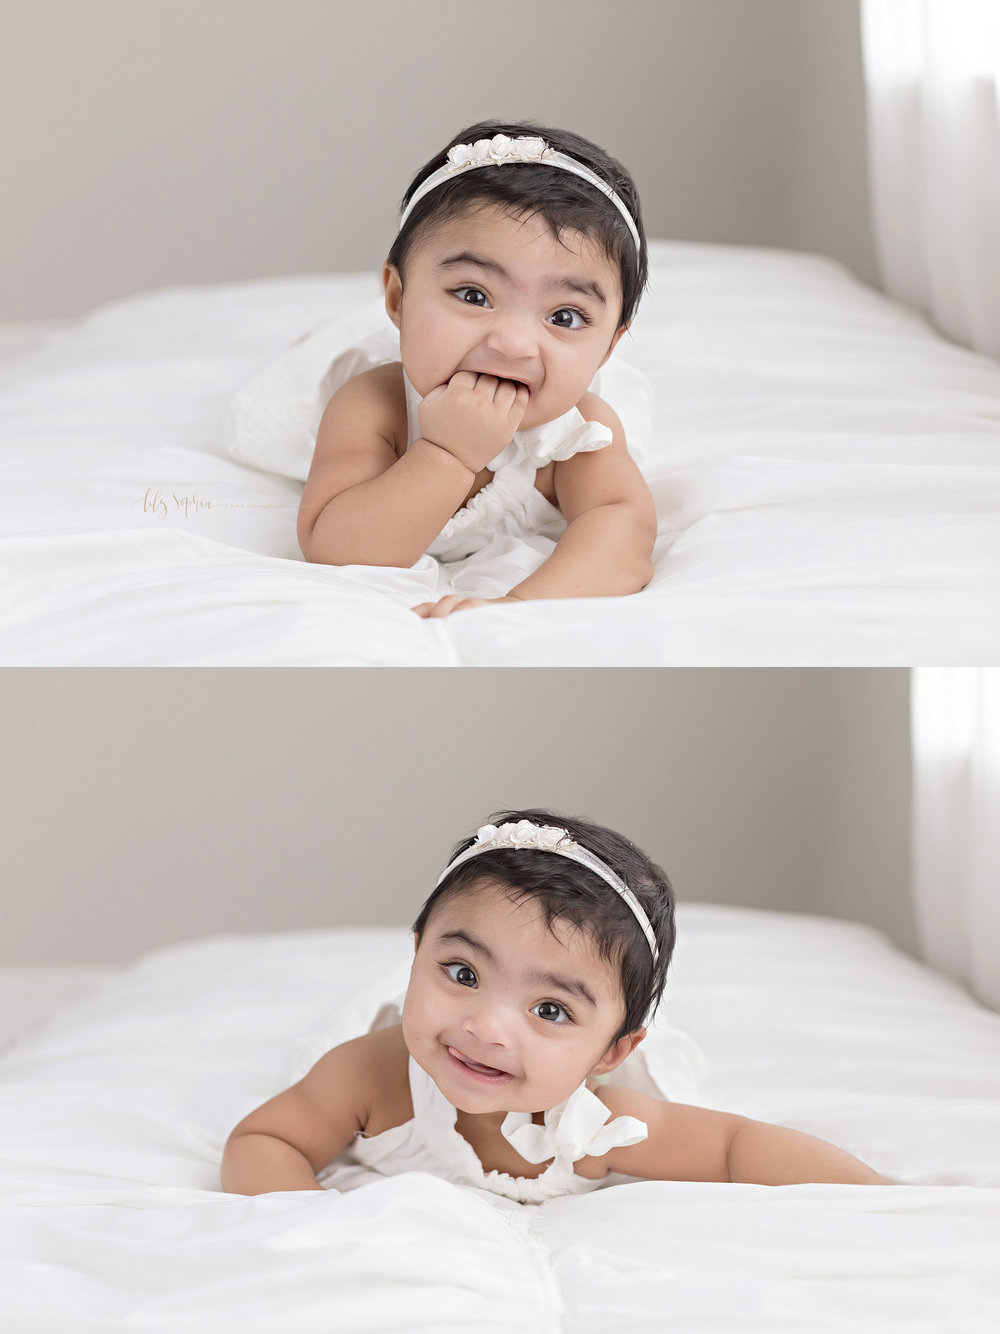 atlanta-buckhead-alpharetta-brookhaven-lily-sophia-photography-baby-family-milestone-photographer-studio-grant-park-intown-six-month-old-girl-indian-family_0093.jpg